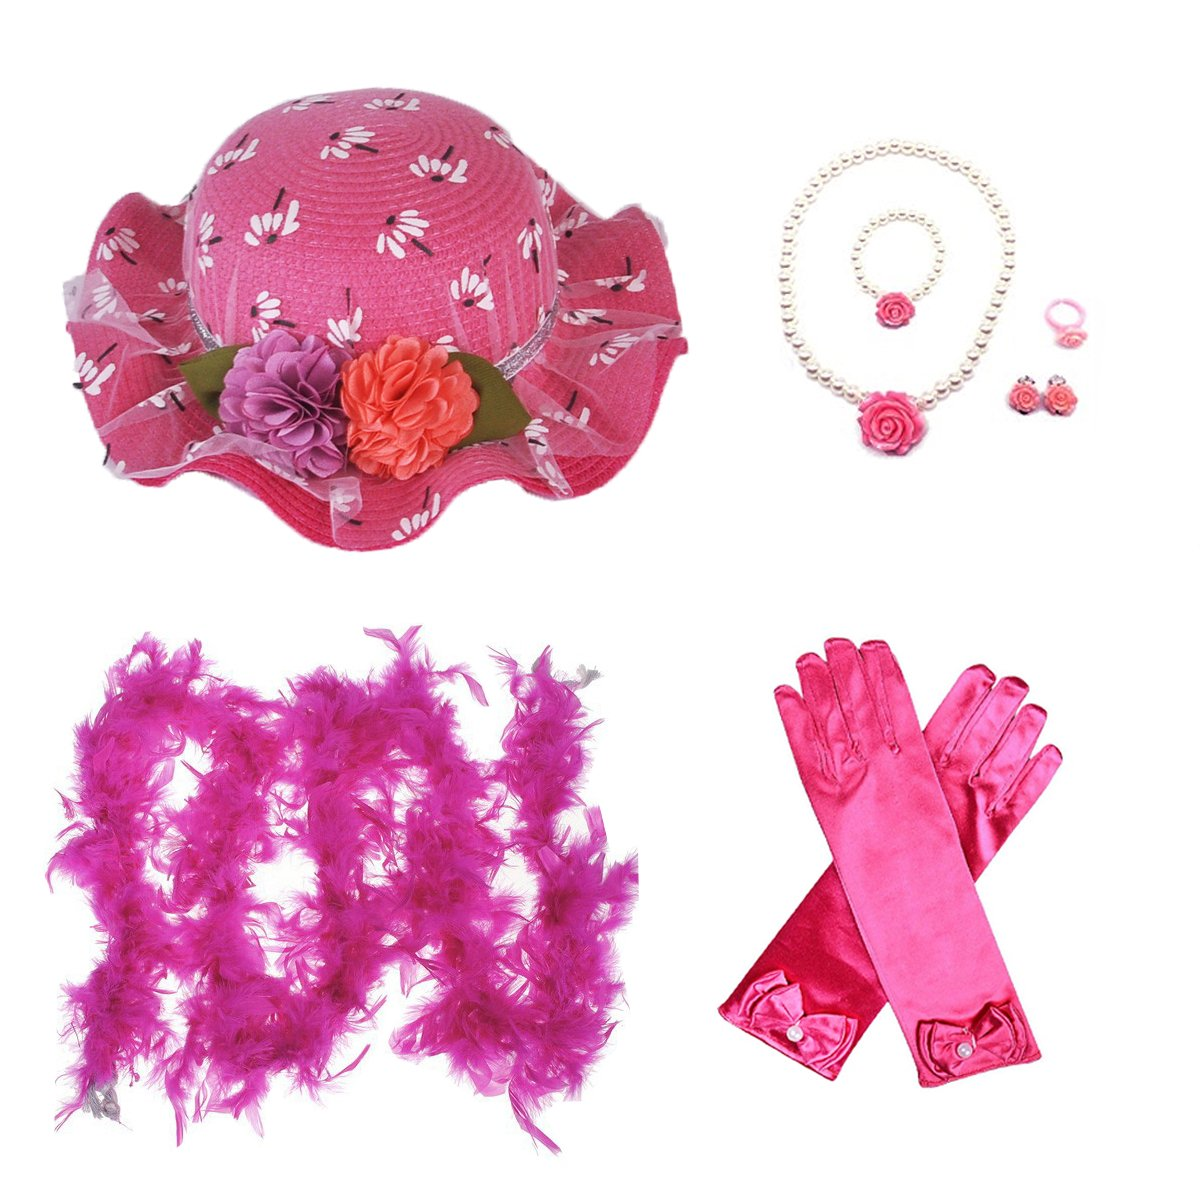 GILAND Girls Tea Party Beauty Set Dress Up Play Sunhat, Feather Boa, Gloves and Jewelry - Rose Red